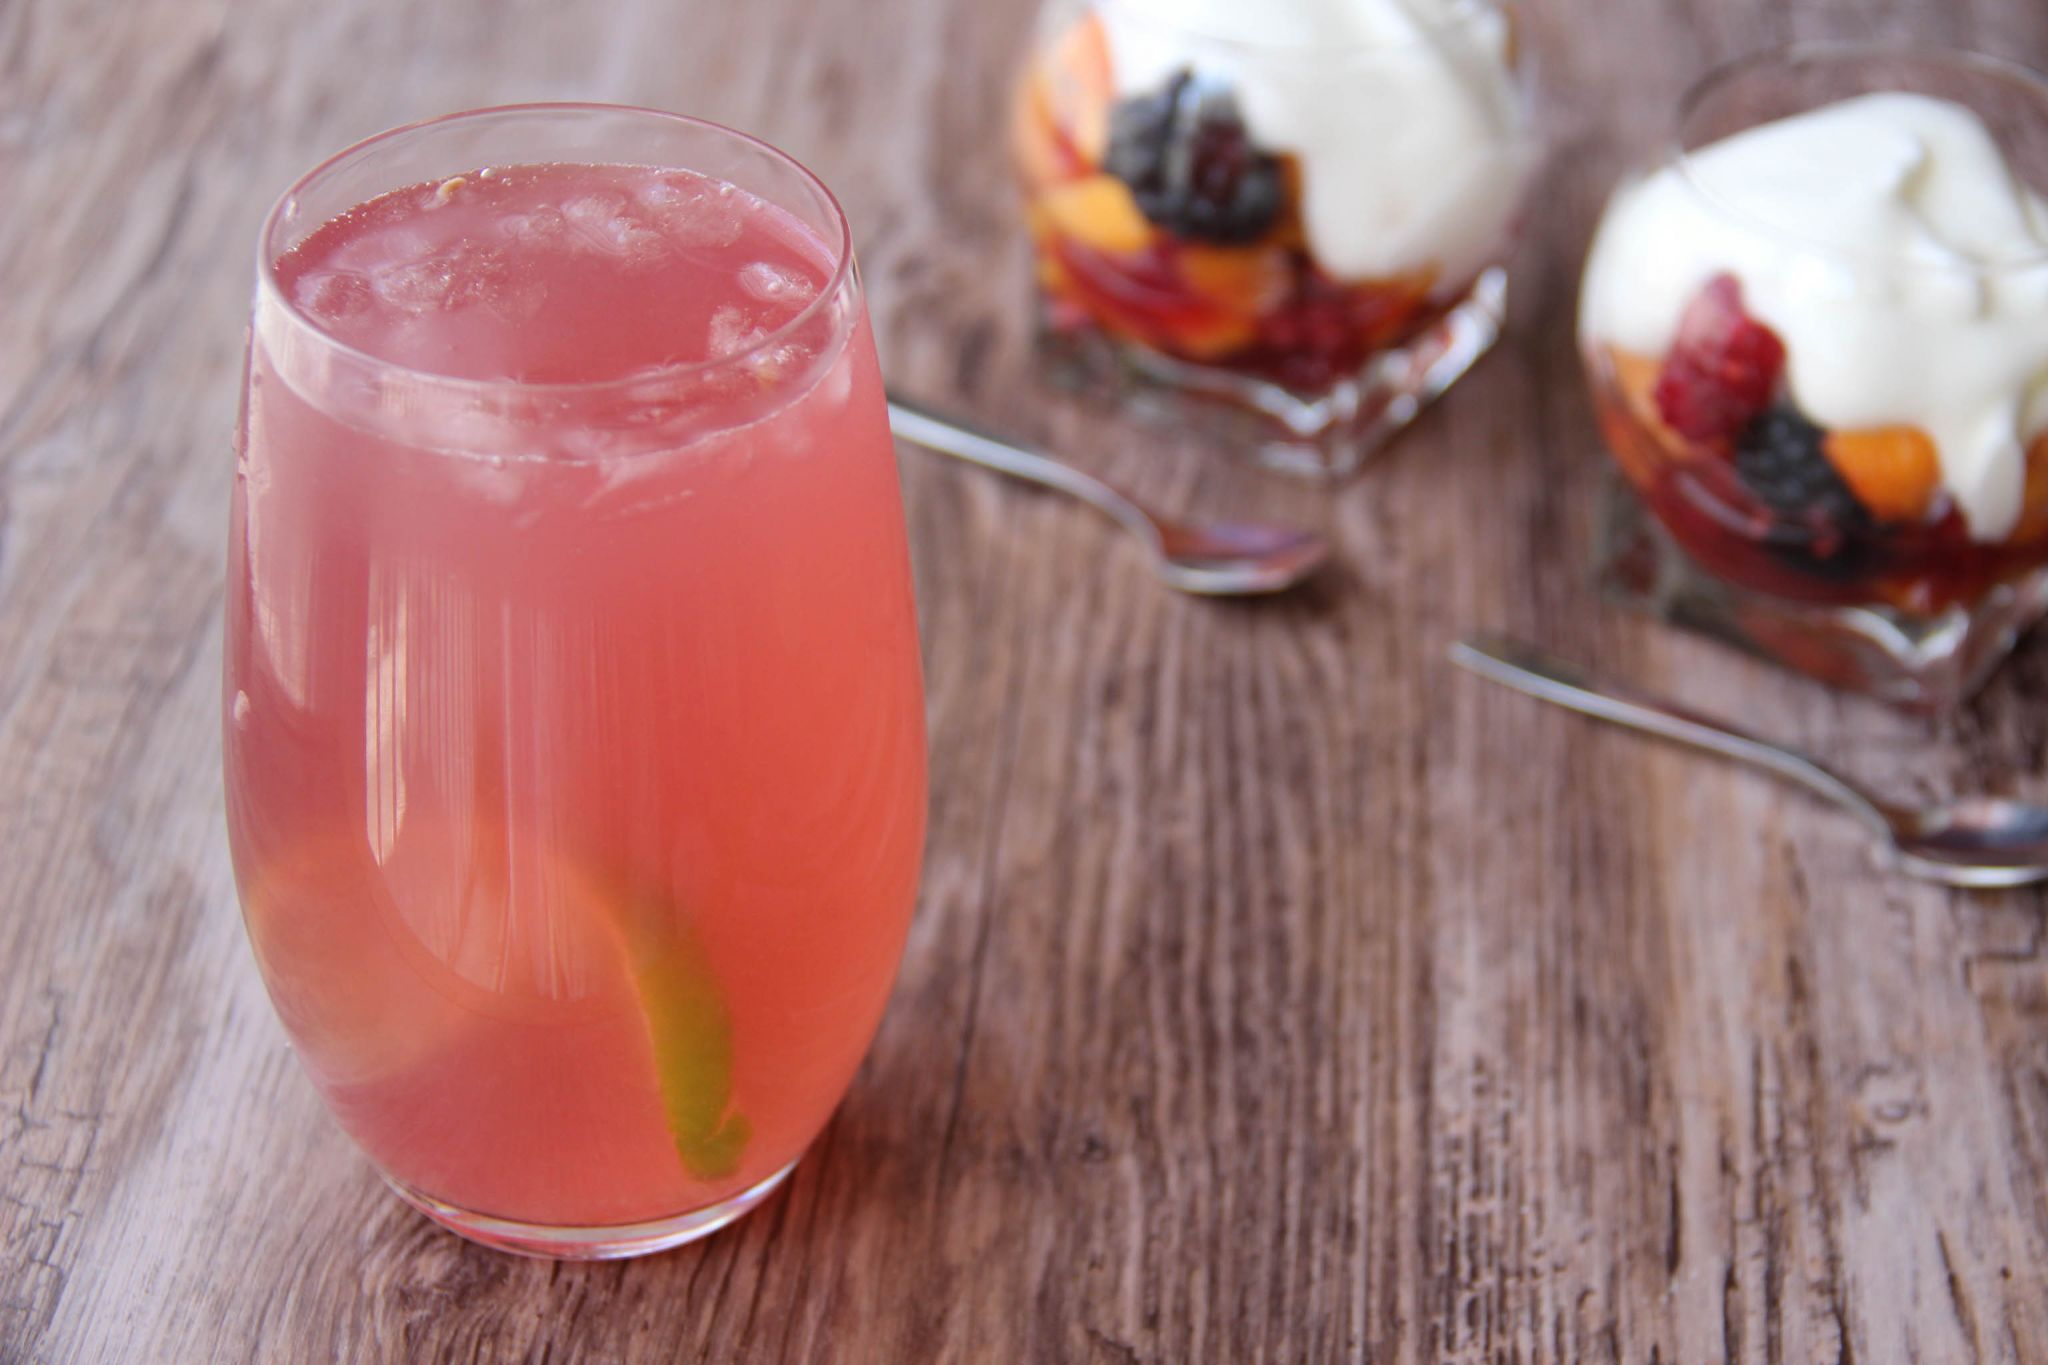 See breeze cocktail and fruit salad